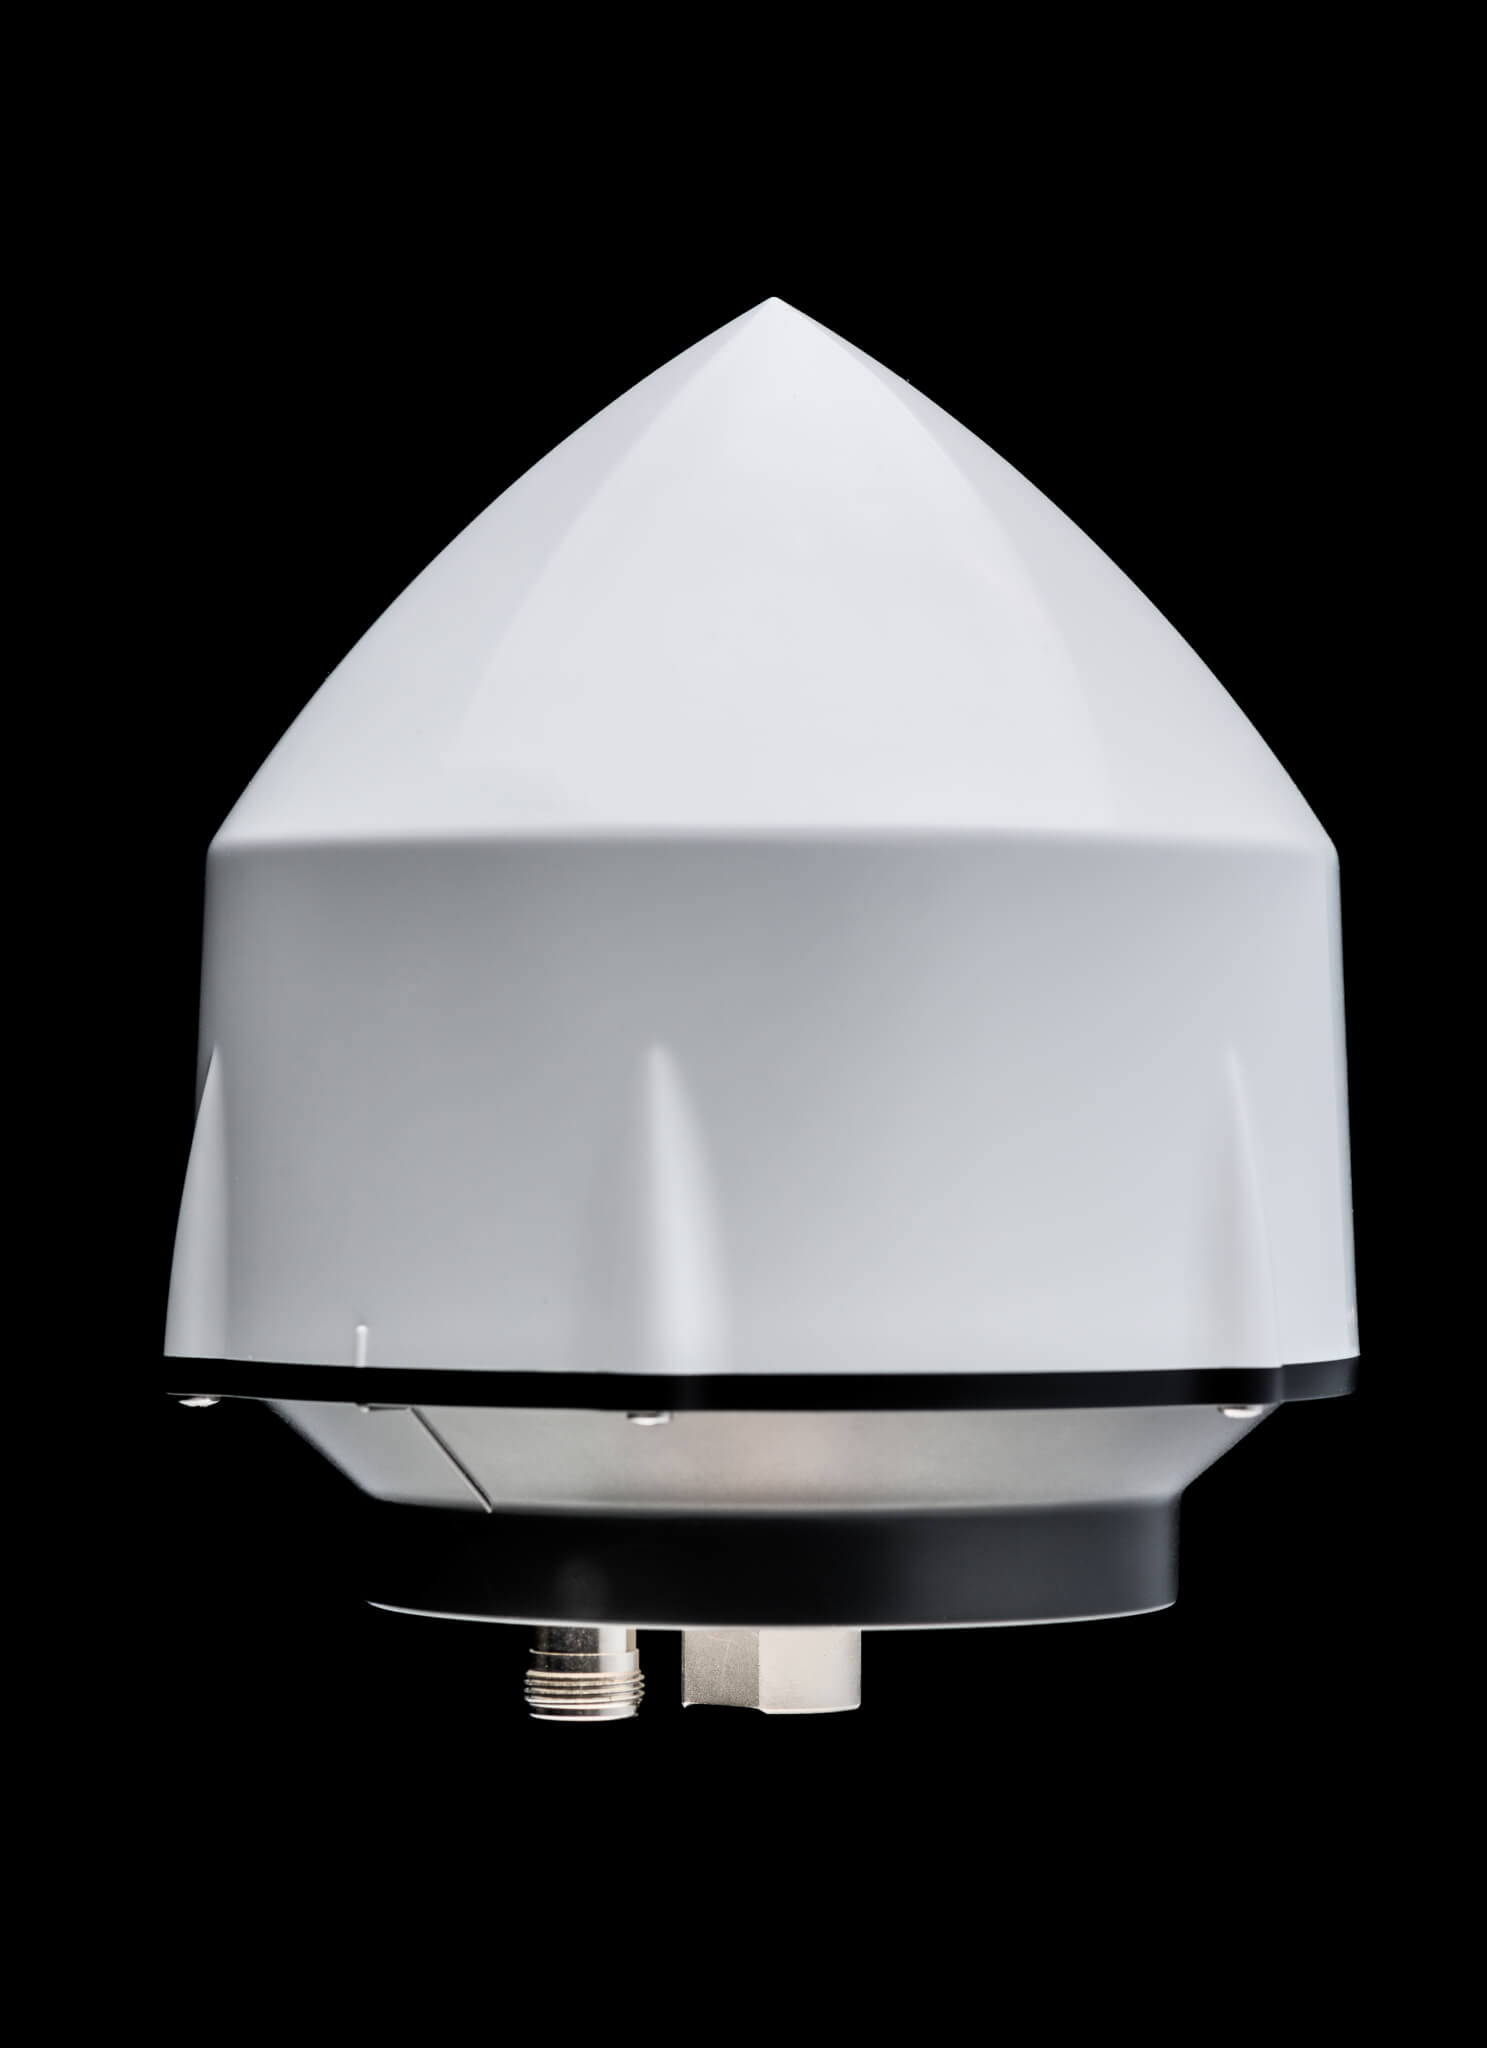 VeraPhase® 6300 Antenna Conical employed in RTK reference stations to enhance positional accuracy of rolling assets